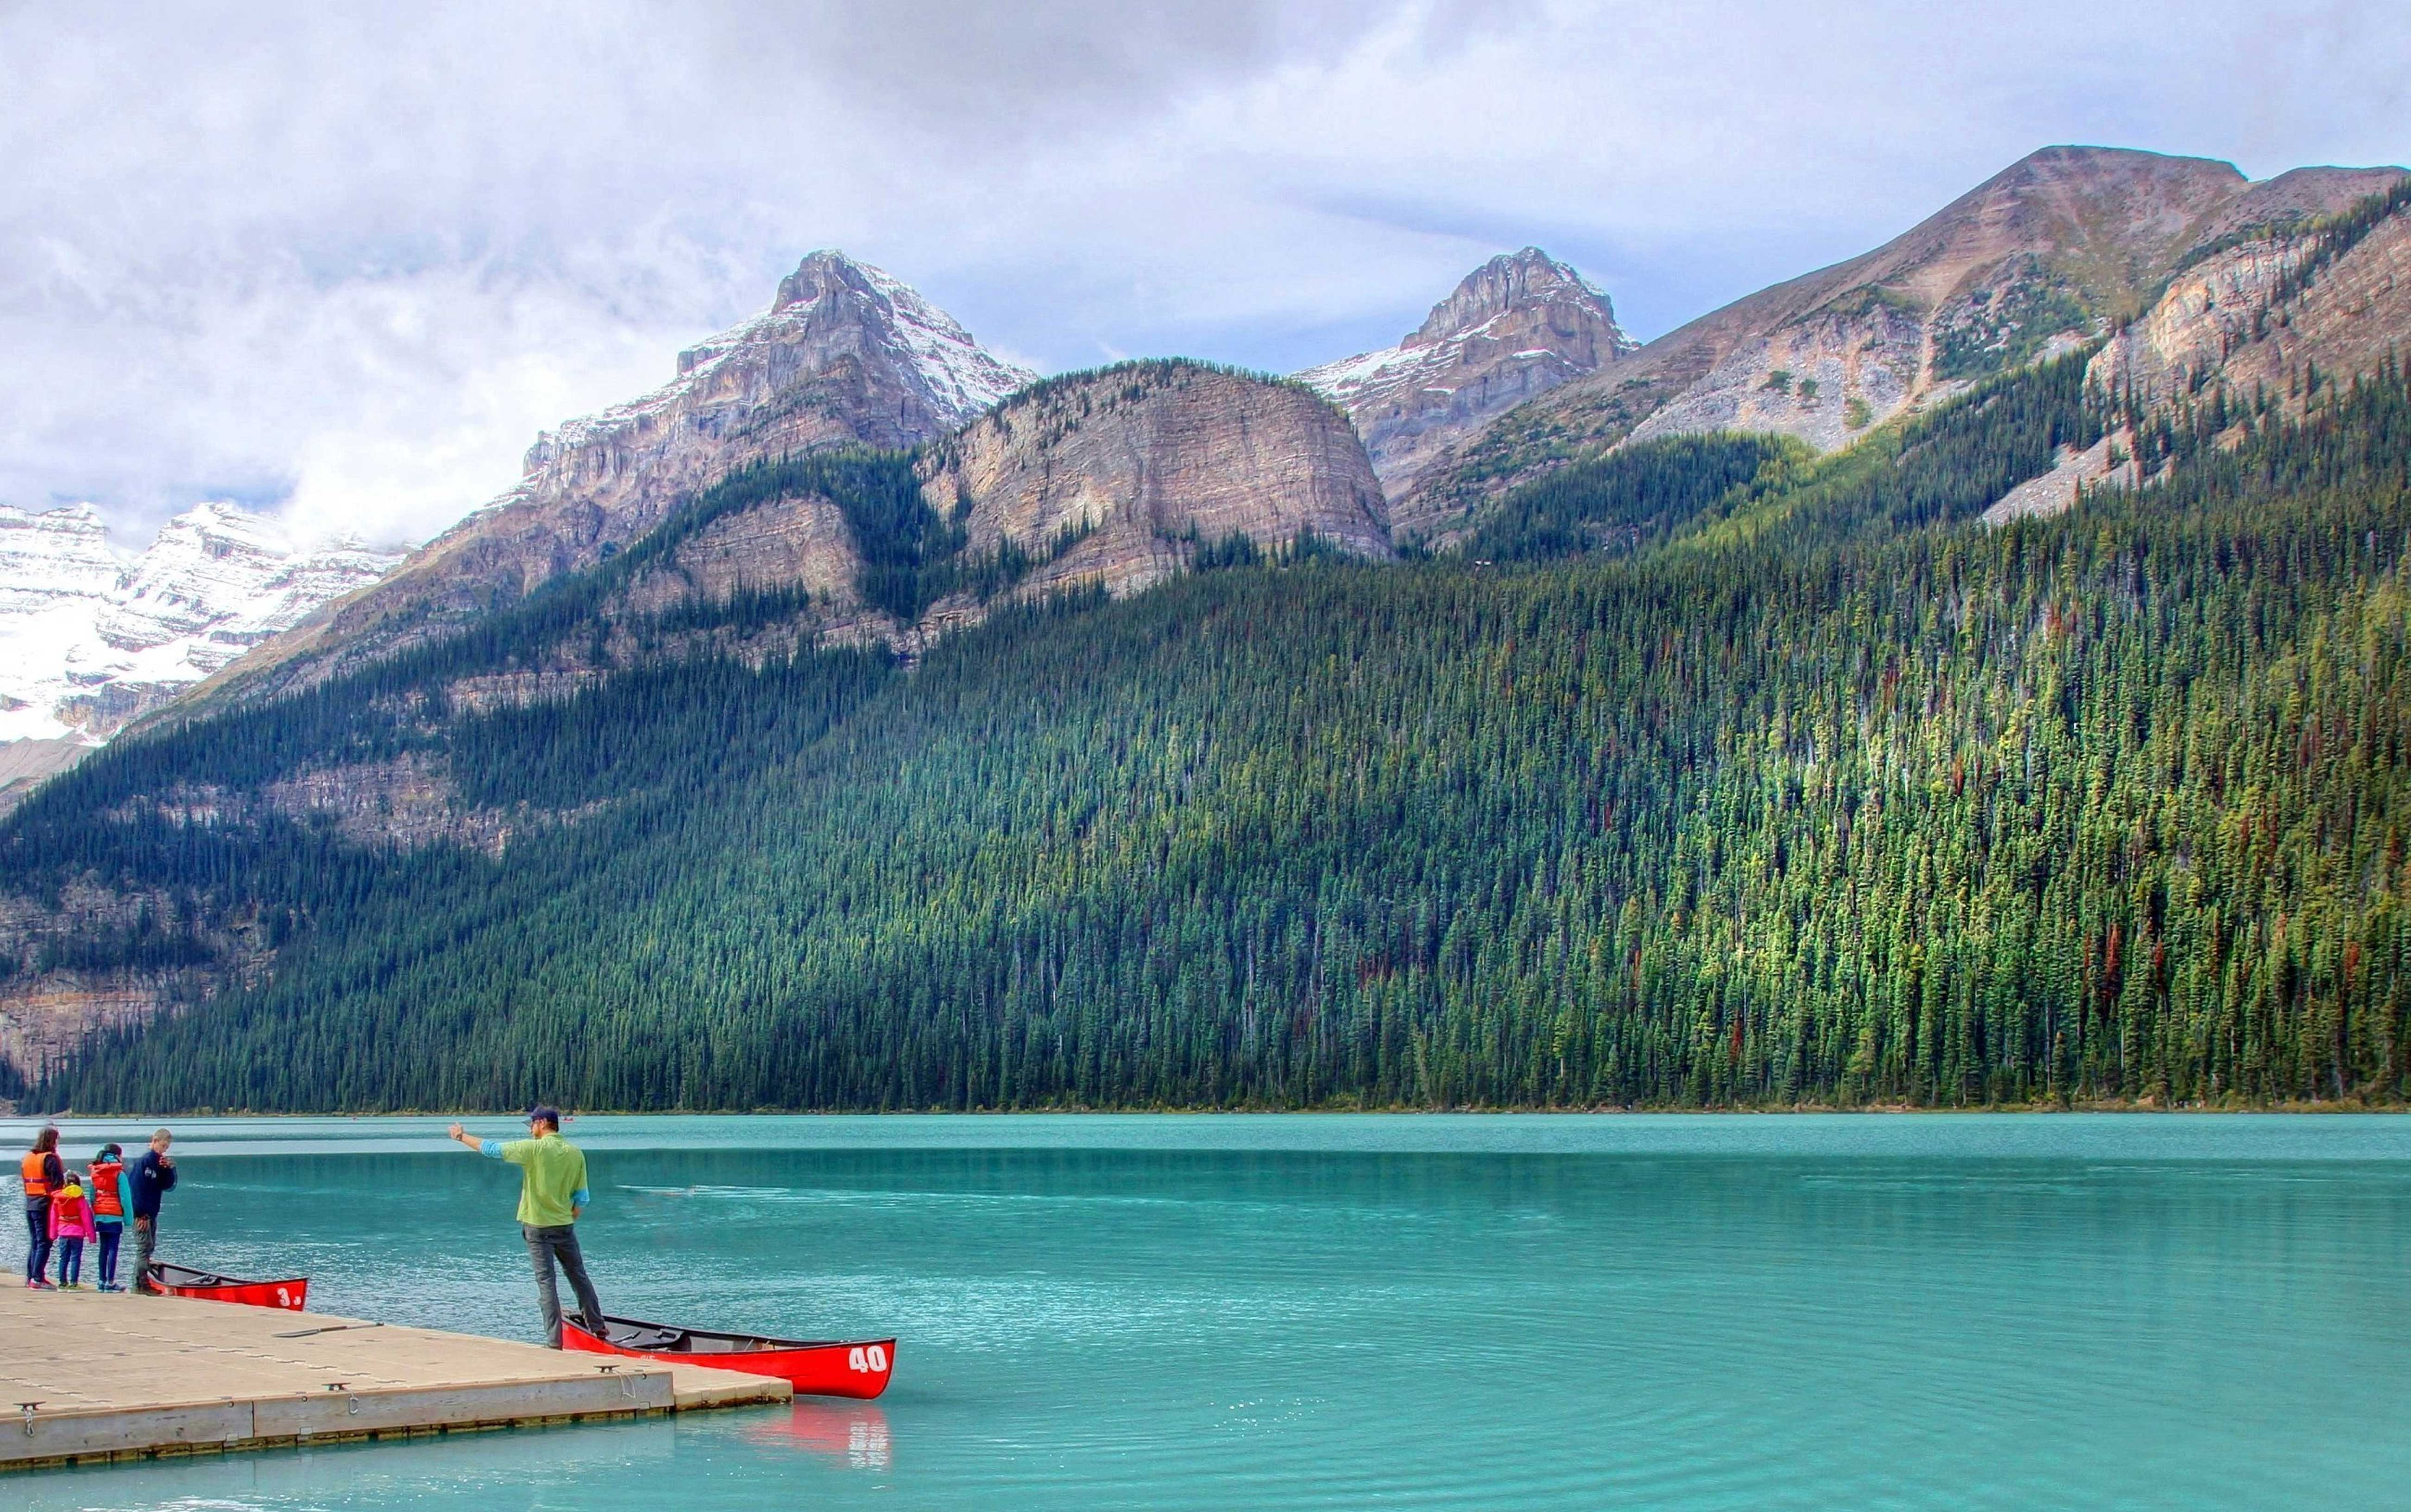 North America Luxury Travel - North americas 9 most scenic lakes